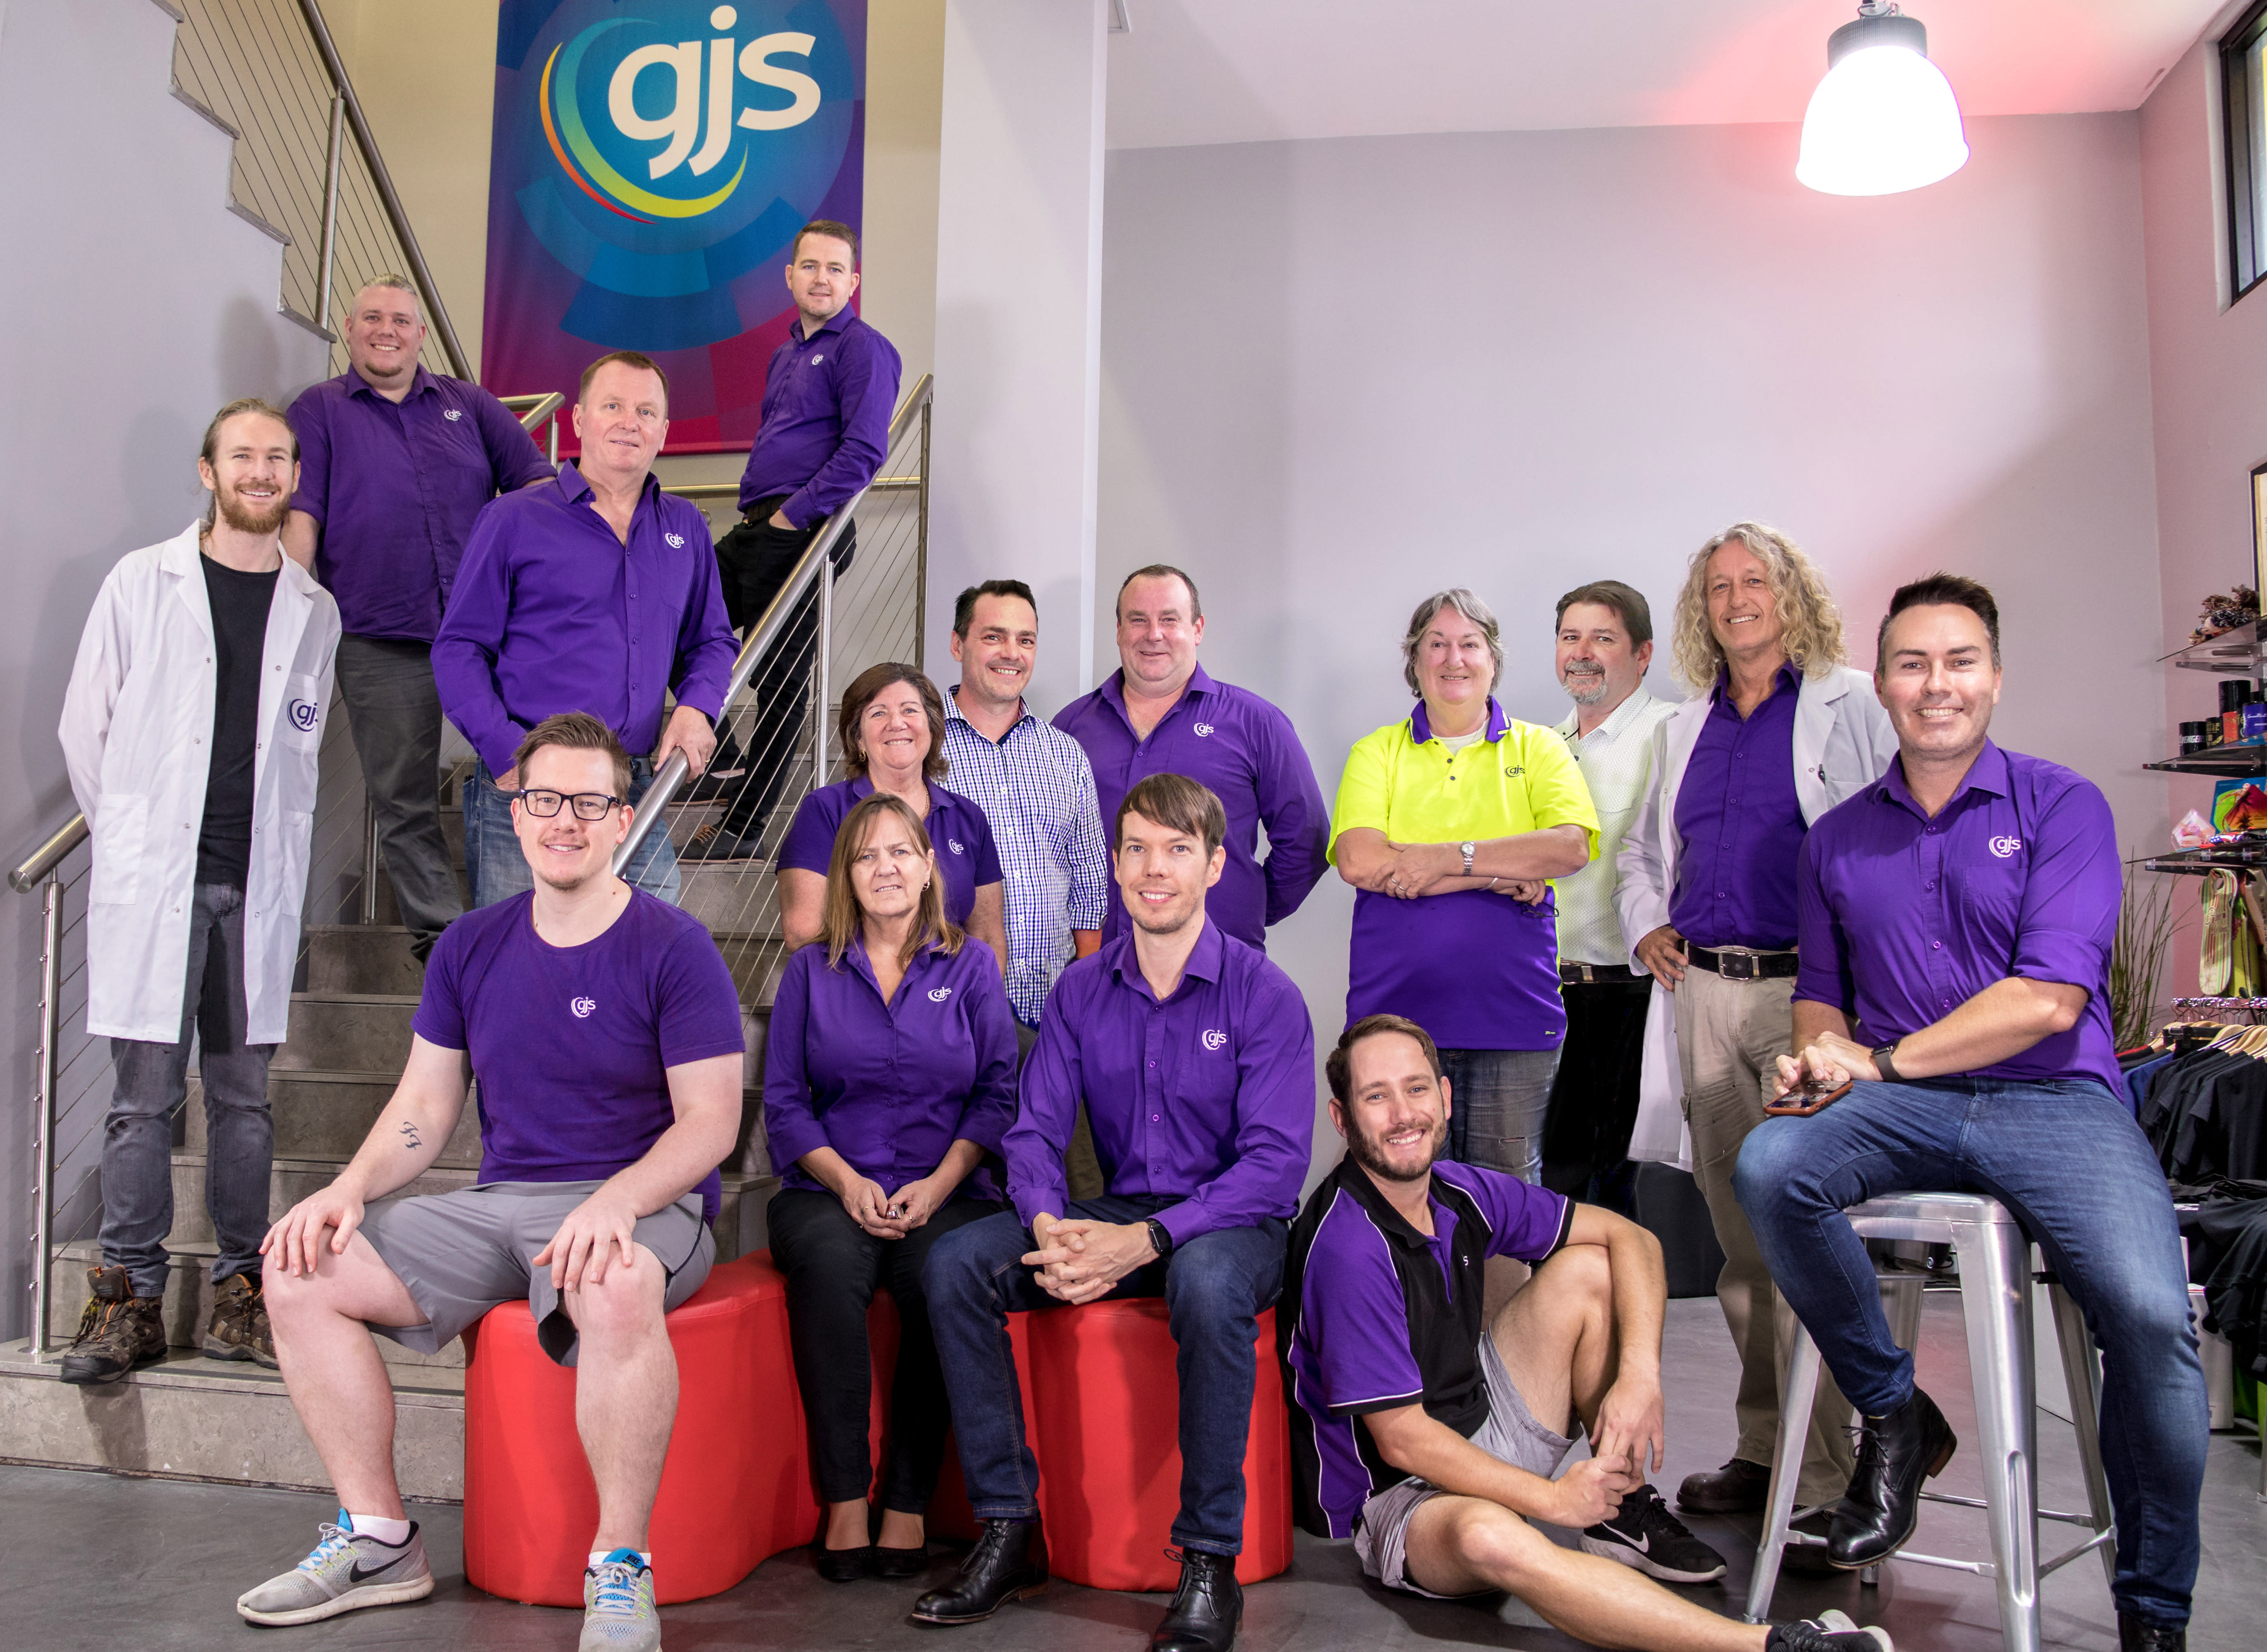 Happy holidays from the GJS team